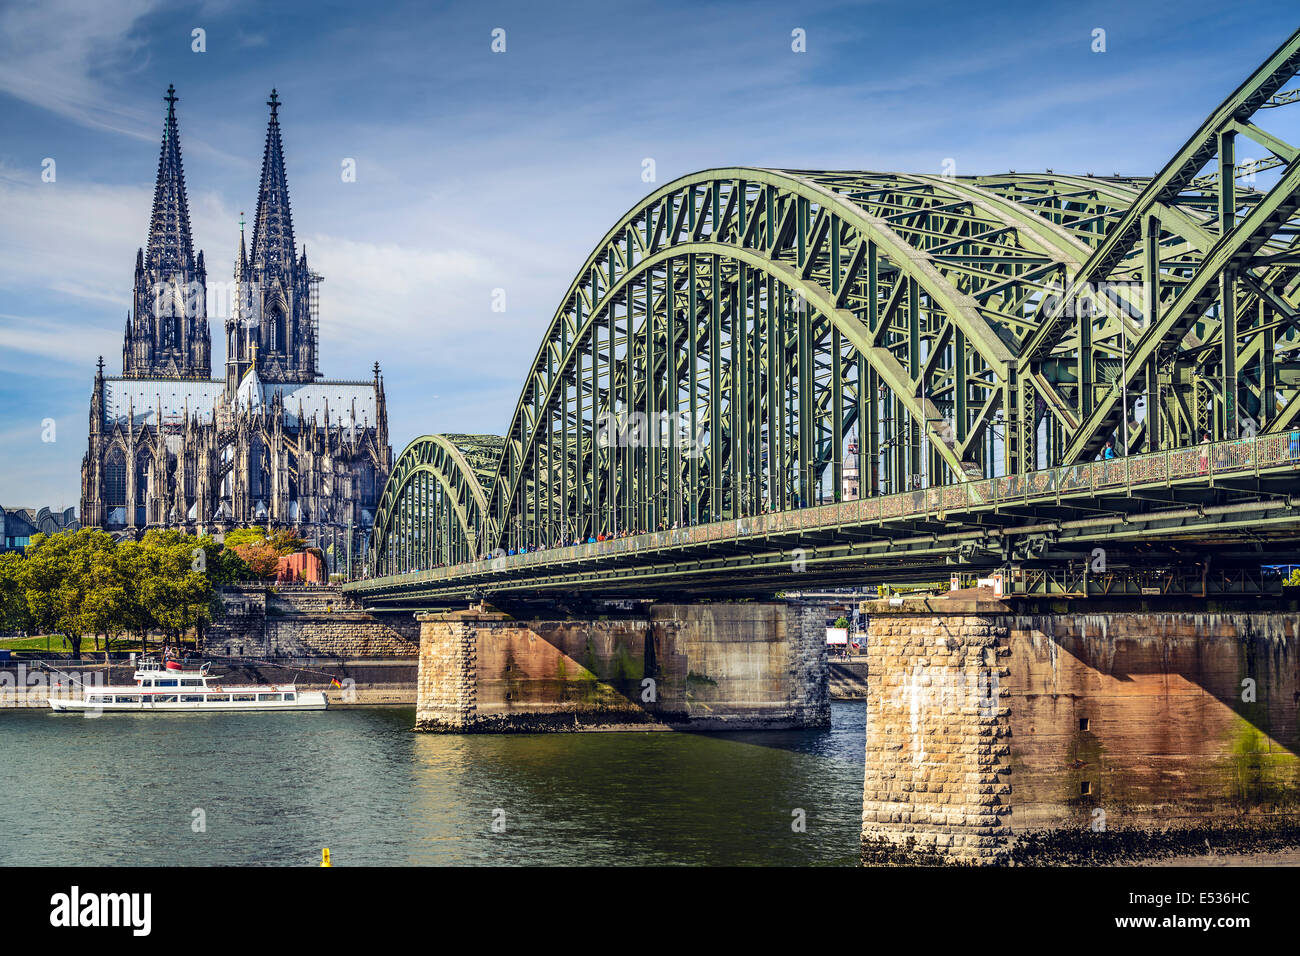 Cologne, Germany over the Rhine River. - Stock Image